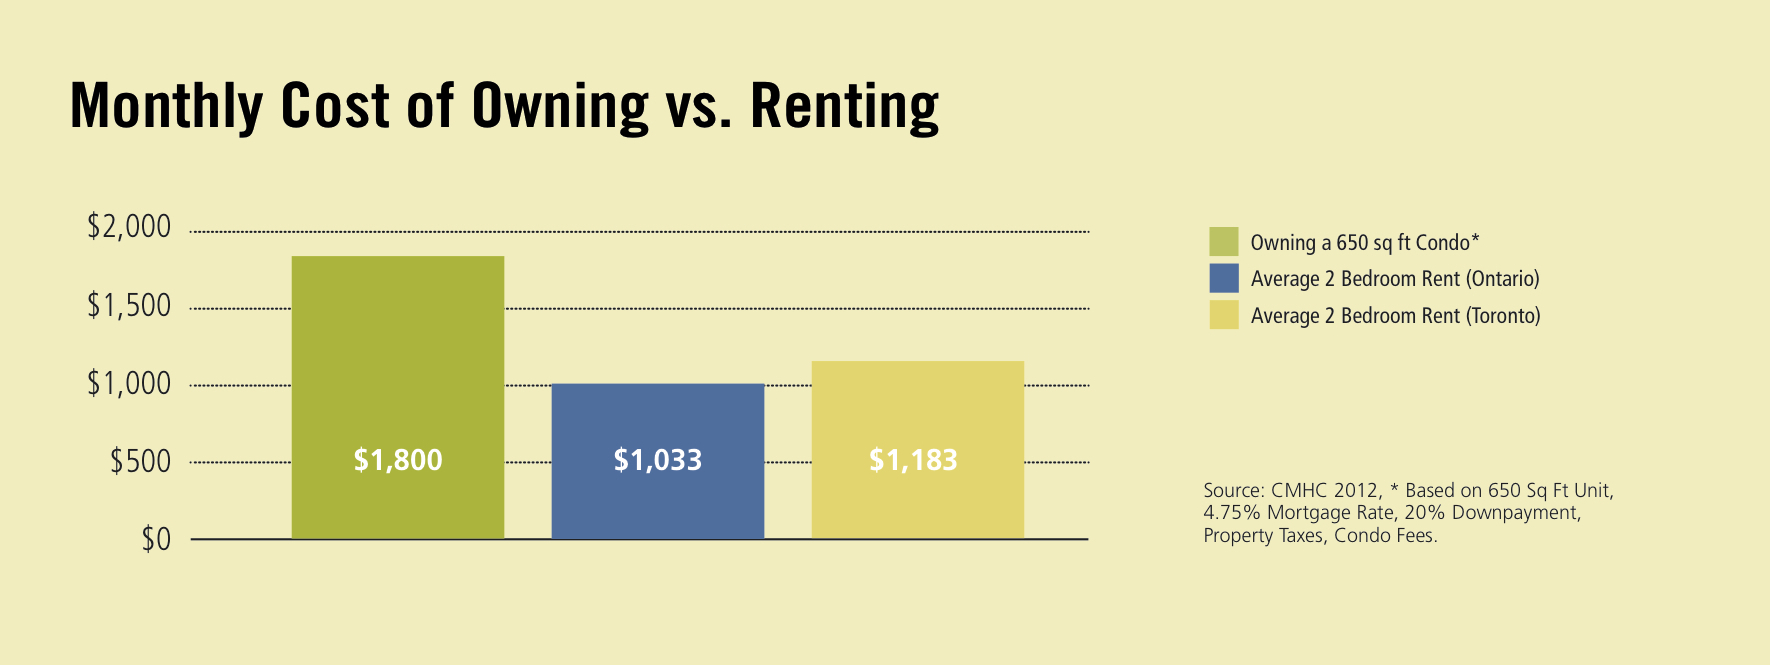 Renting offers a good deal